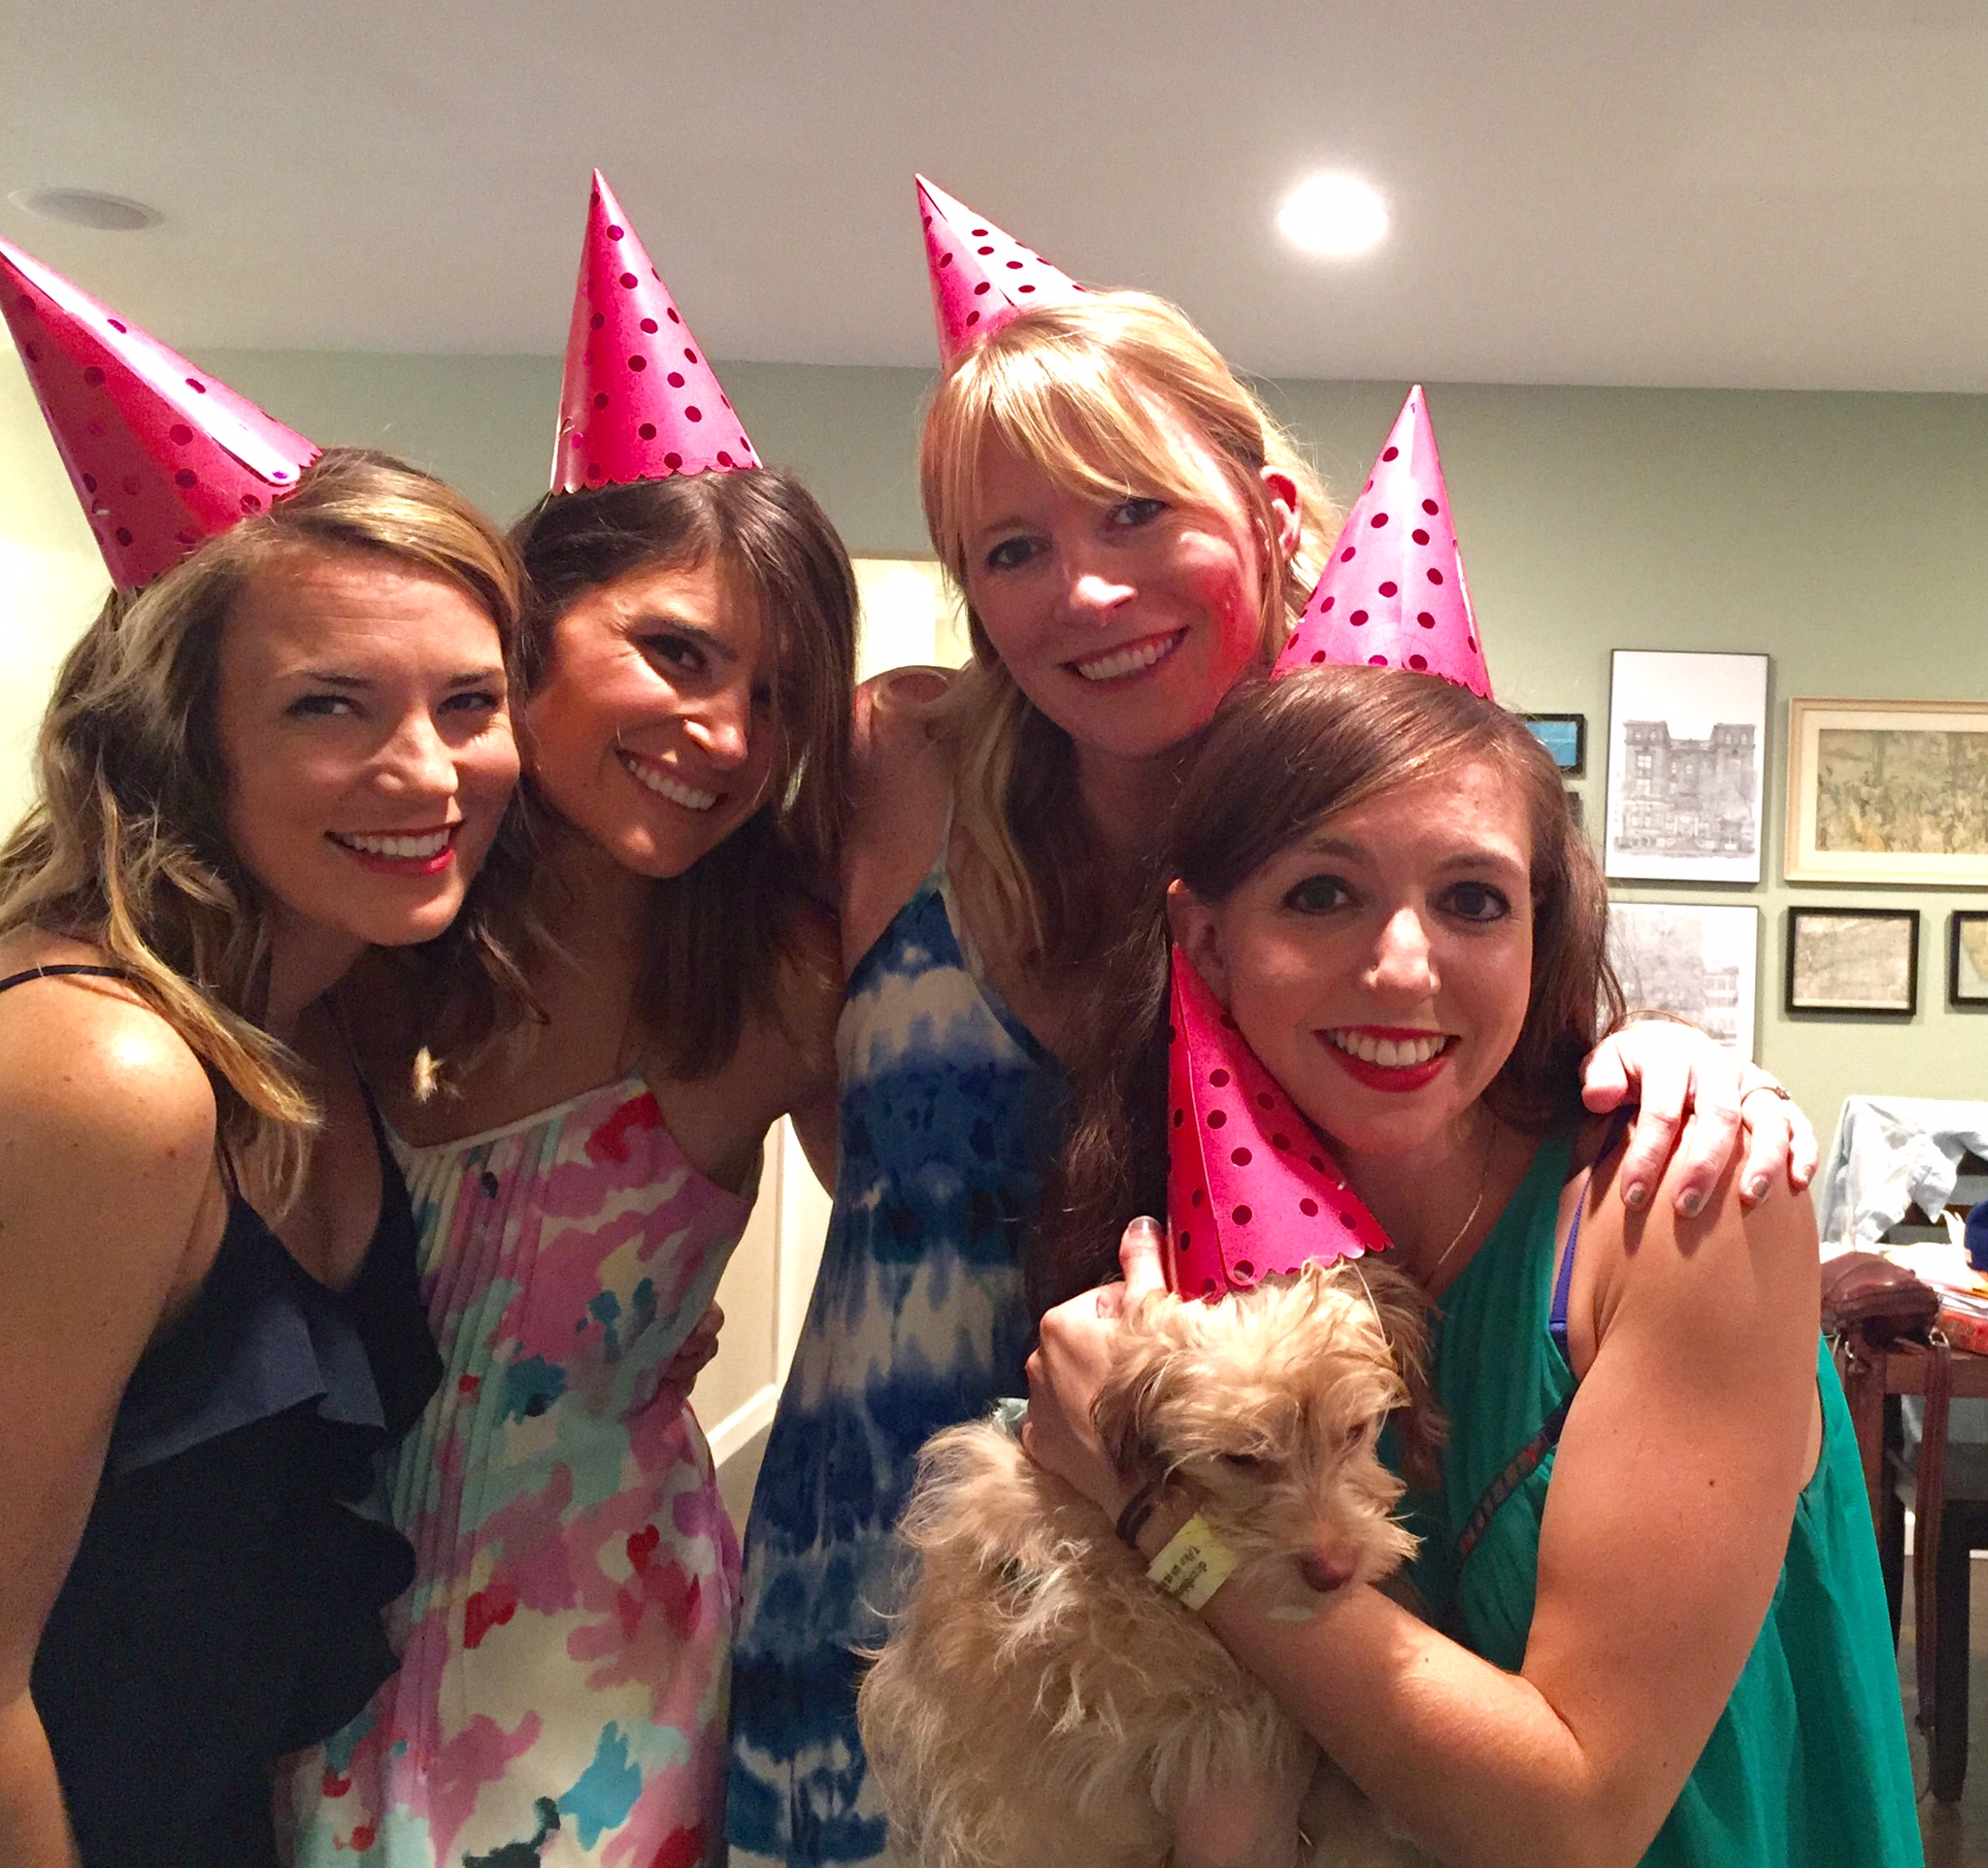 From the Left: Molly (Sister), Katie (Cousin), Sarah (Sister), Stephie (BFF), Pasta Bowl (pup)